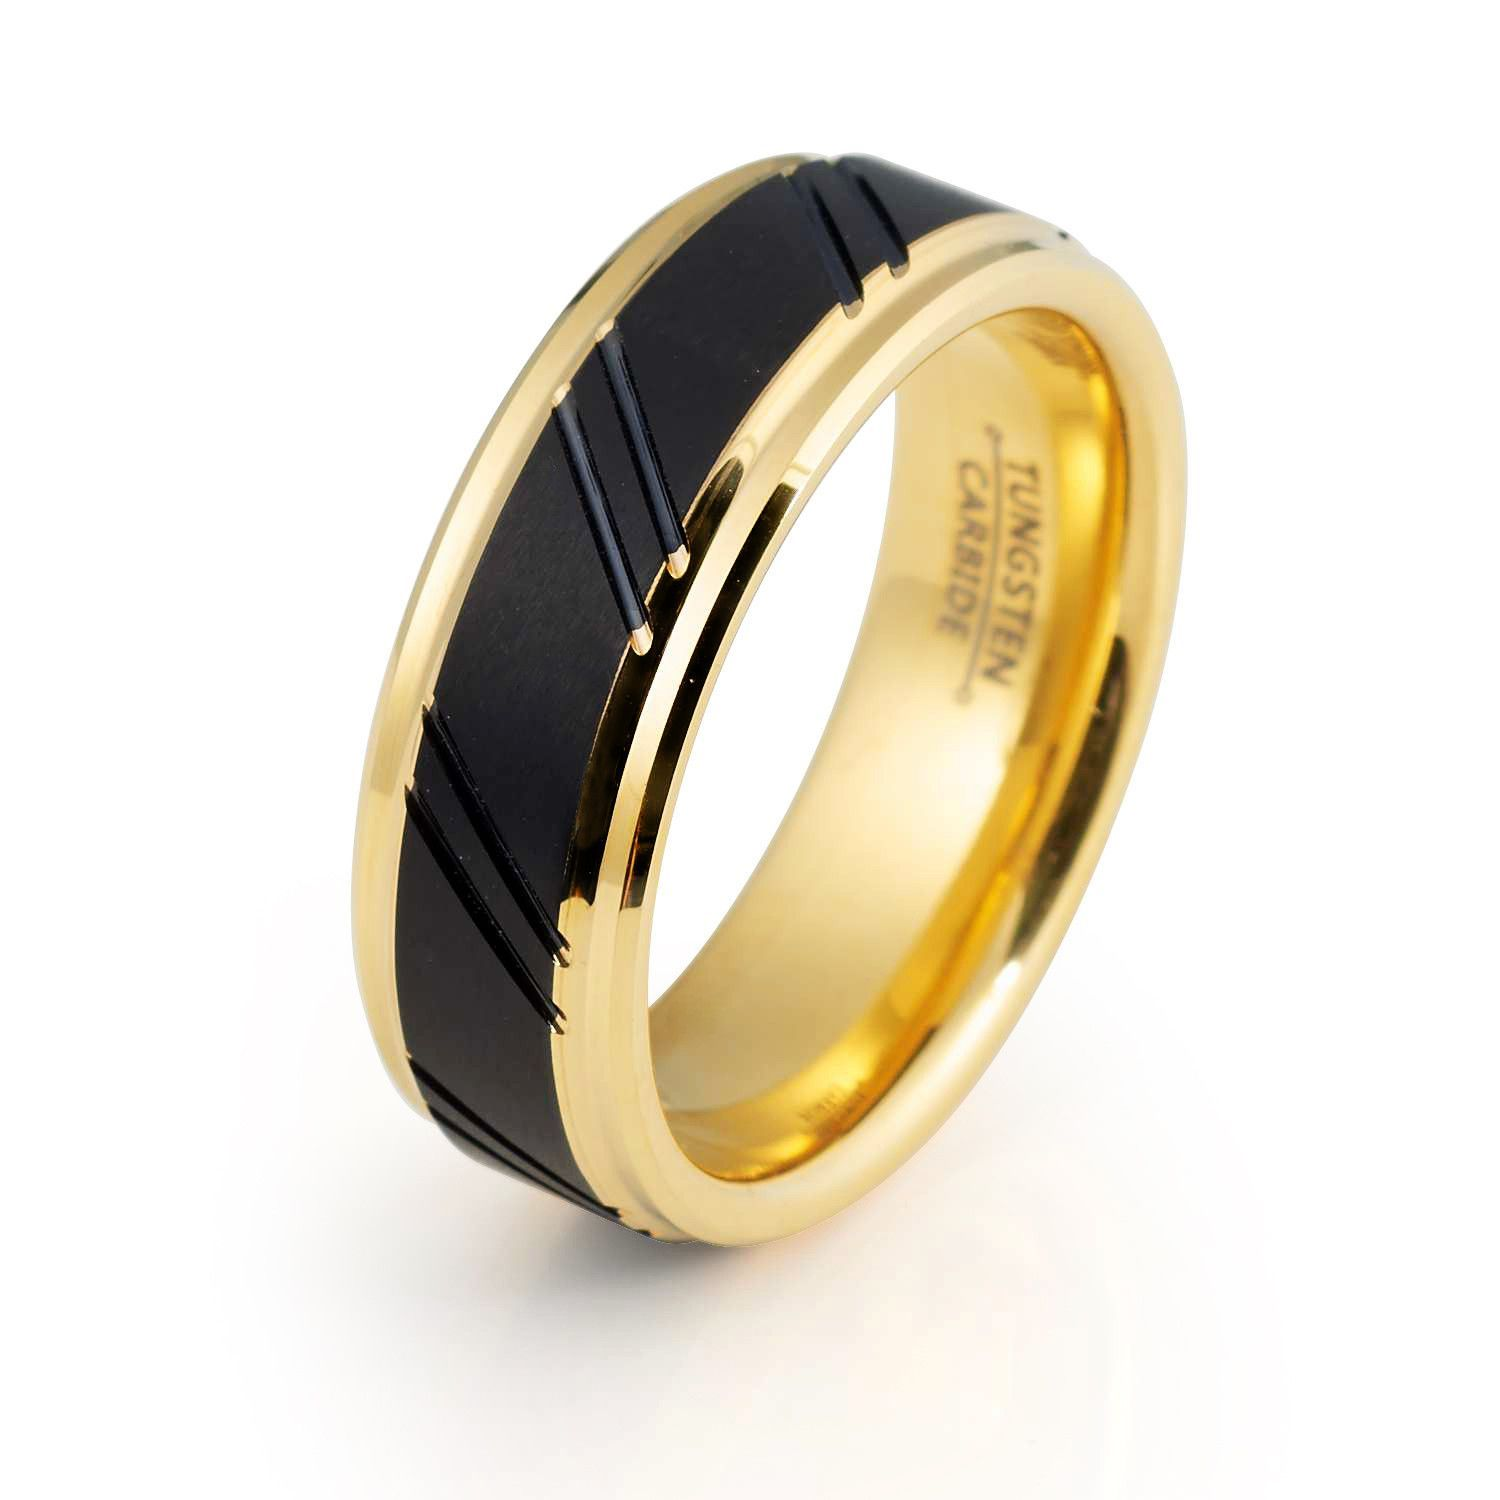 band ideas pride gold bands male for men symbols steel ring rings gallery buy wedding decor gay